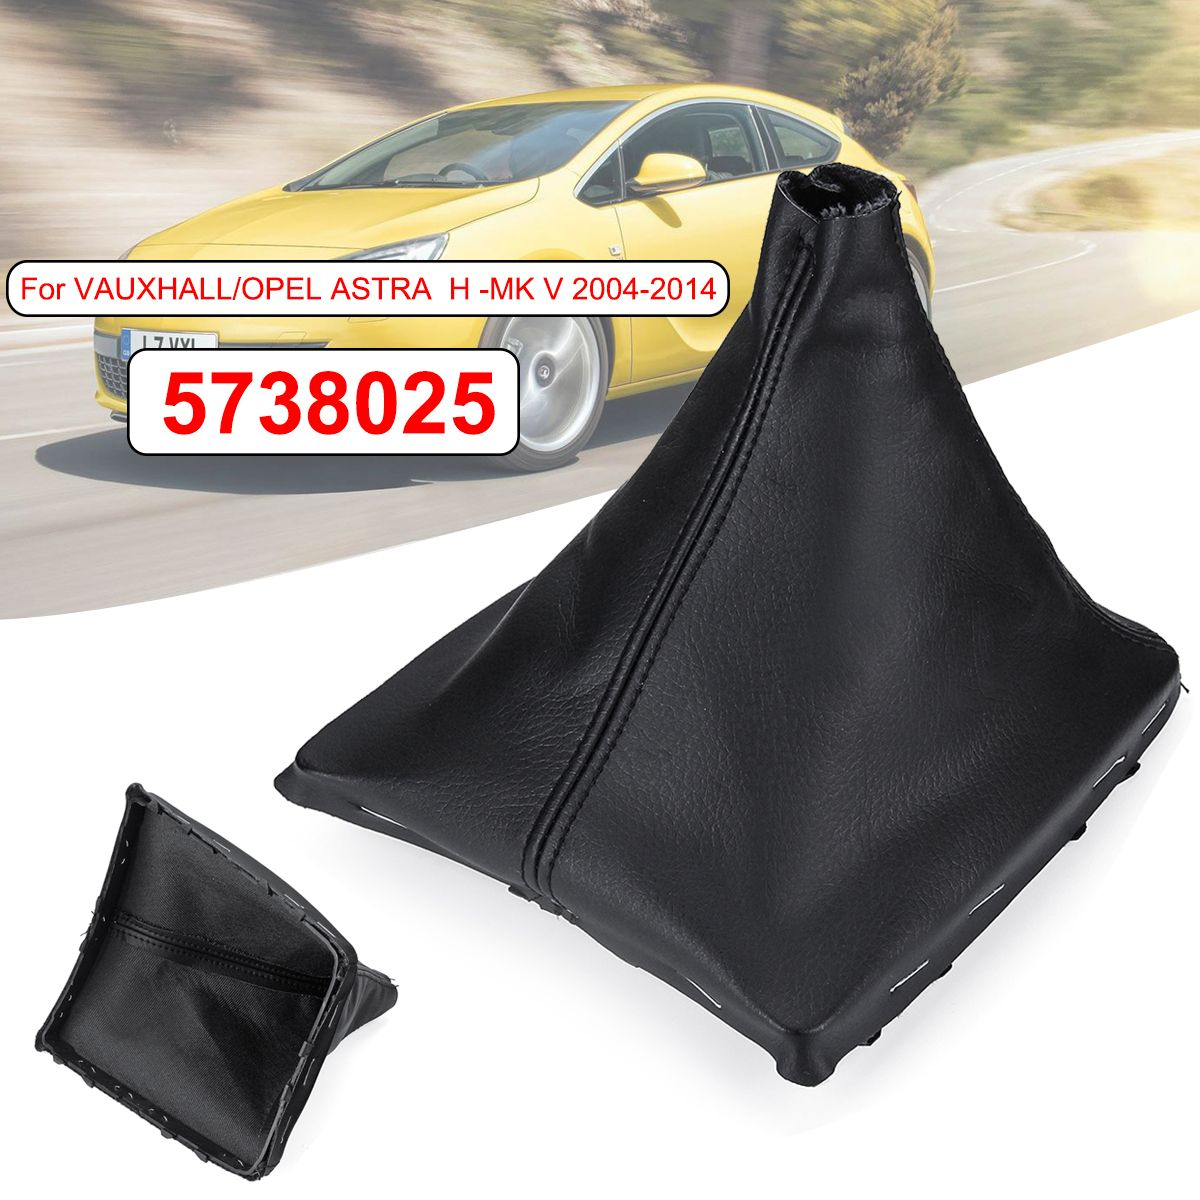 5738025 PU Leather Car Gear Shift Knob Gaiter Boot Cover Gear Stick Cover For Vauxhall Opel Astra H-MK V